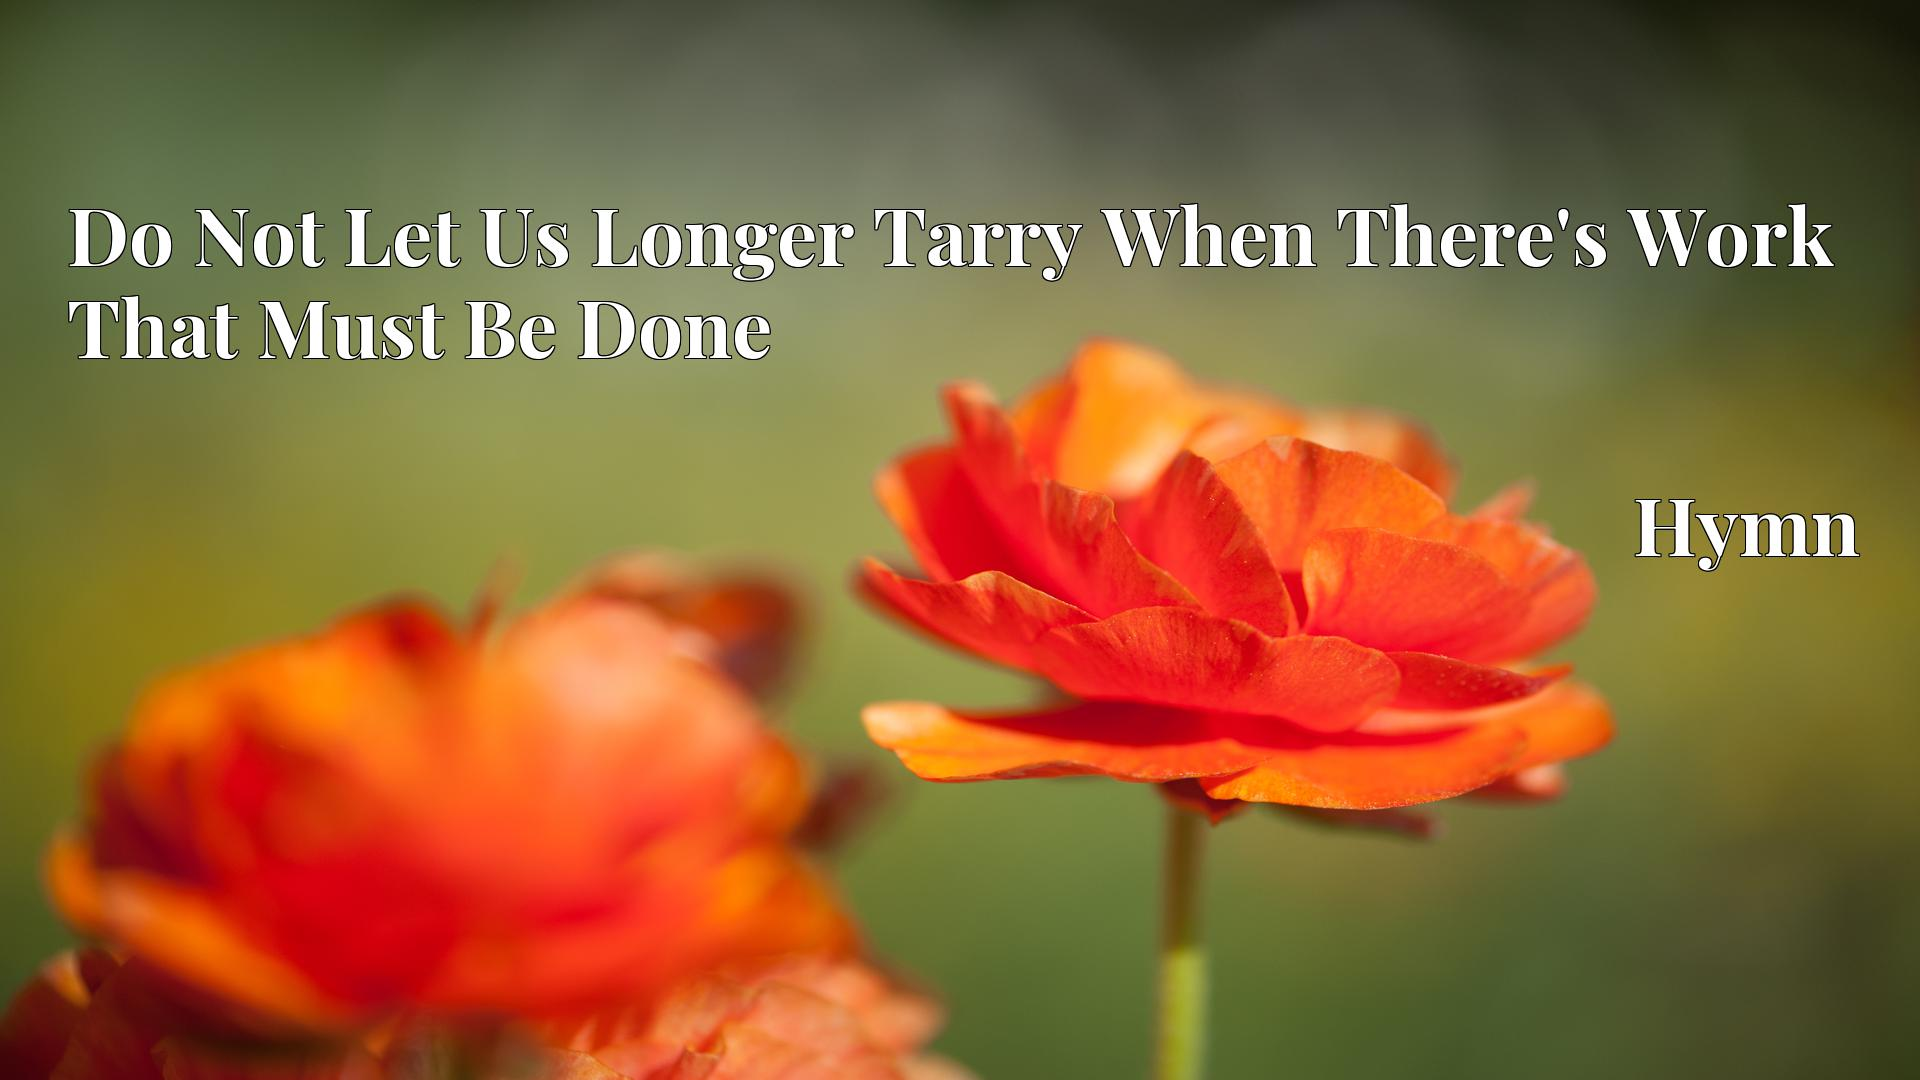 Do Not Let Us Longer Tarry When There's Work That Must Be Done - Hymn